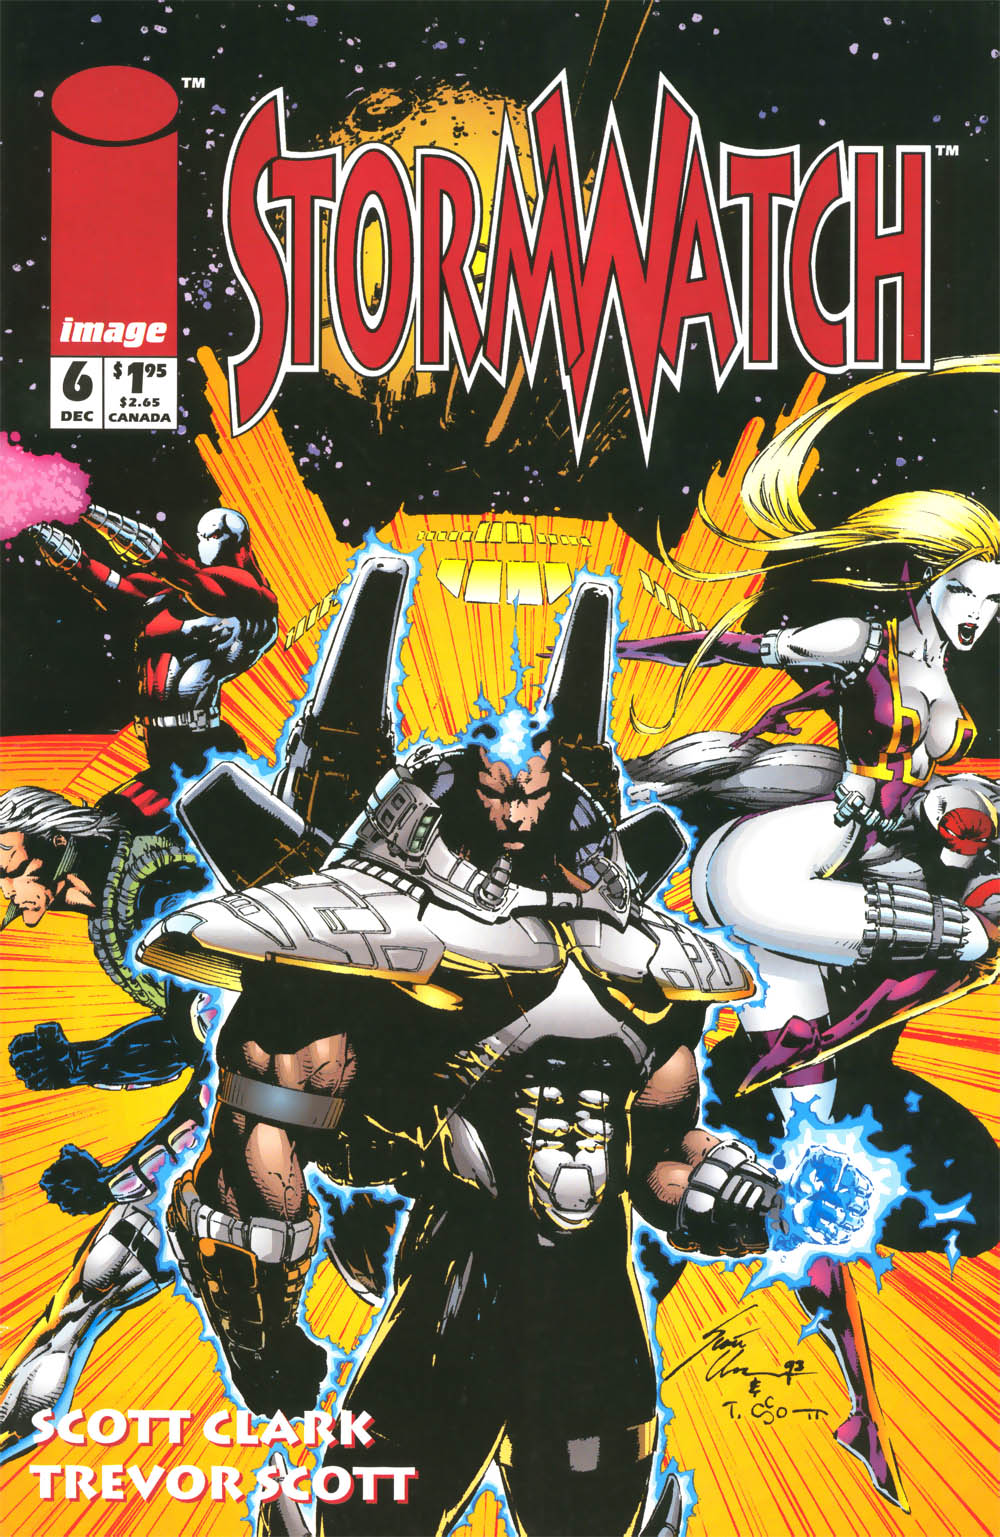 From The Beginning: WildStorm Universe - Stormwatch #6-8 ...